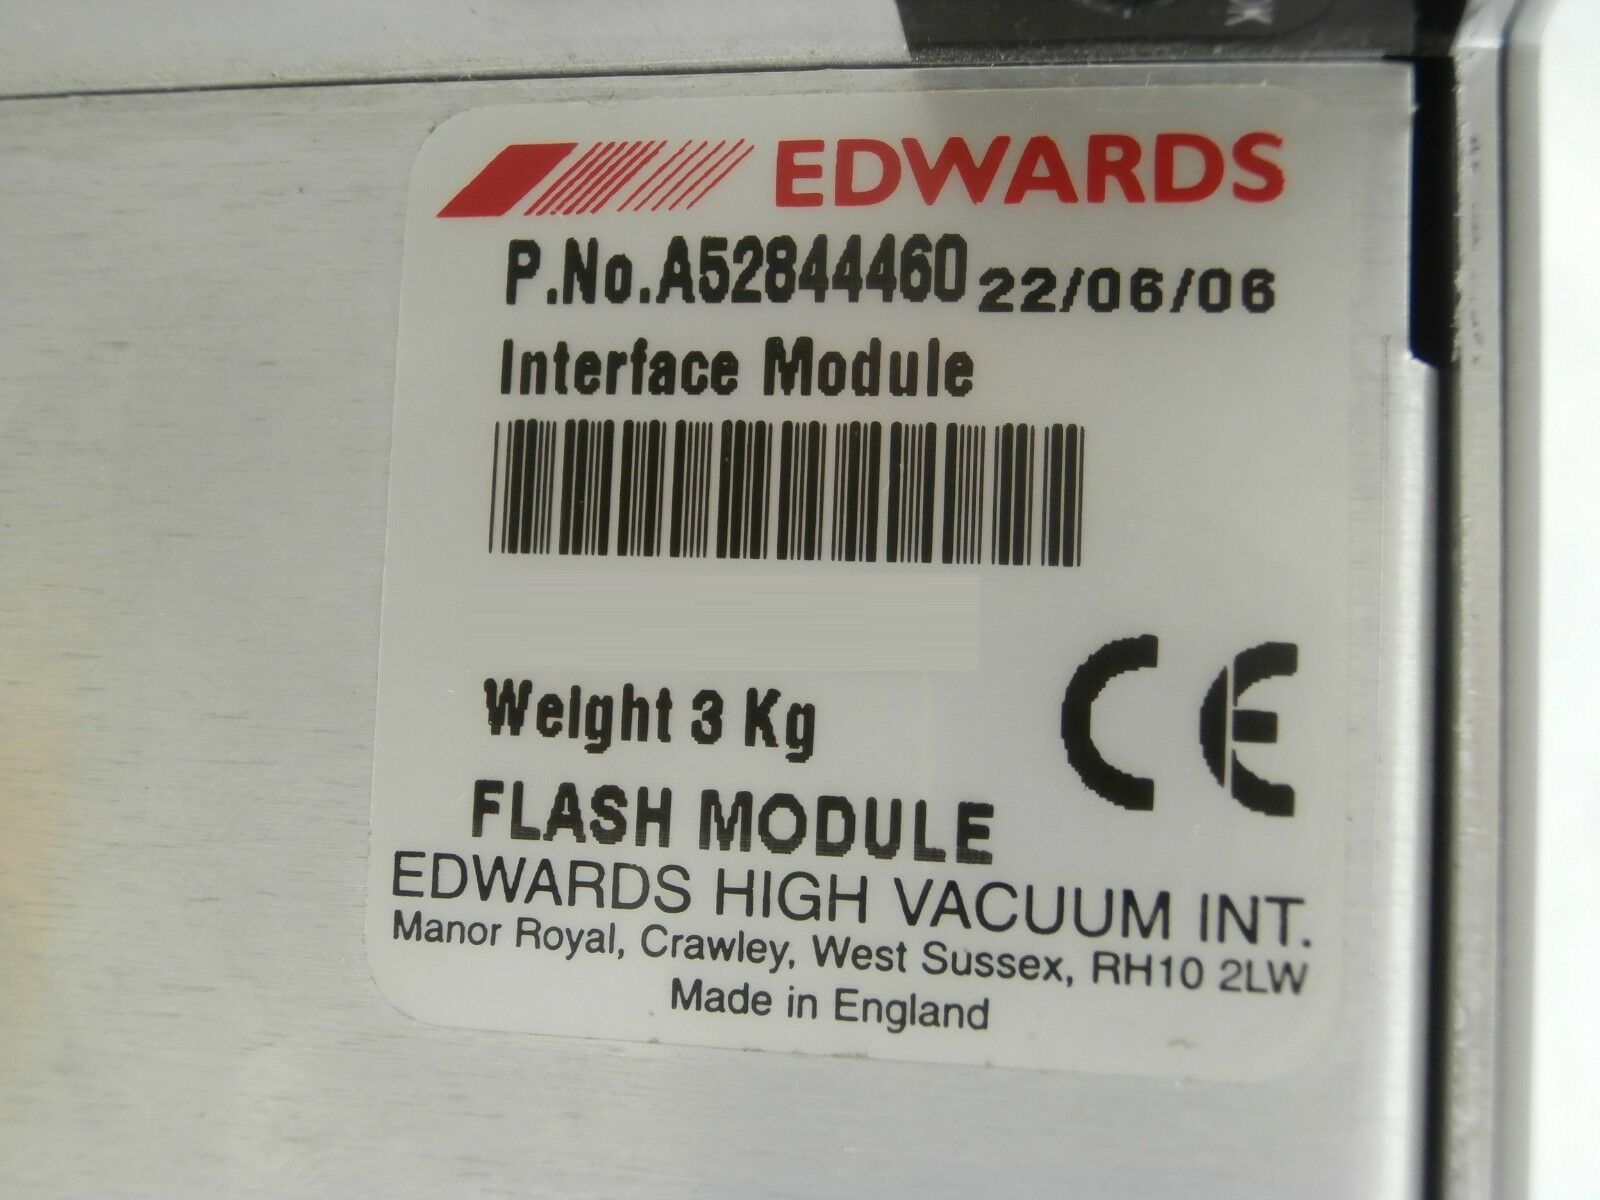 Edwards A52844460 Vacuum Pump im Interface Module Used Working